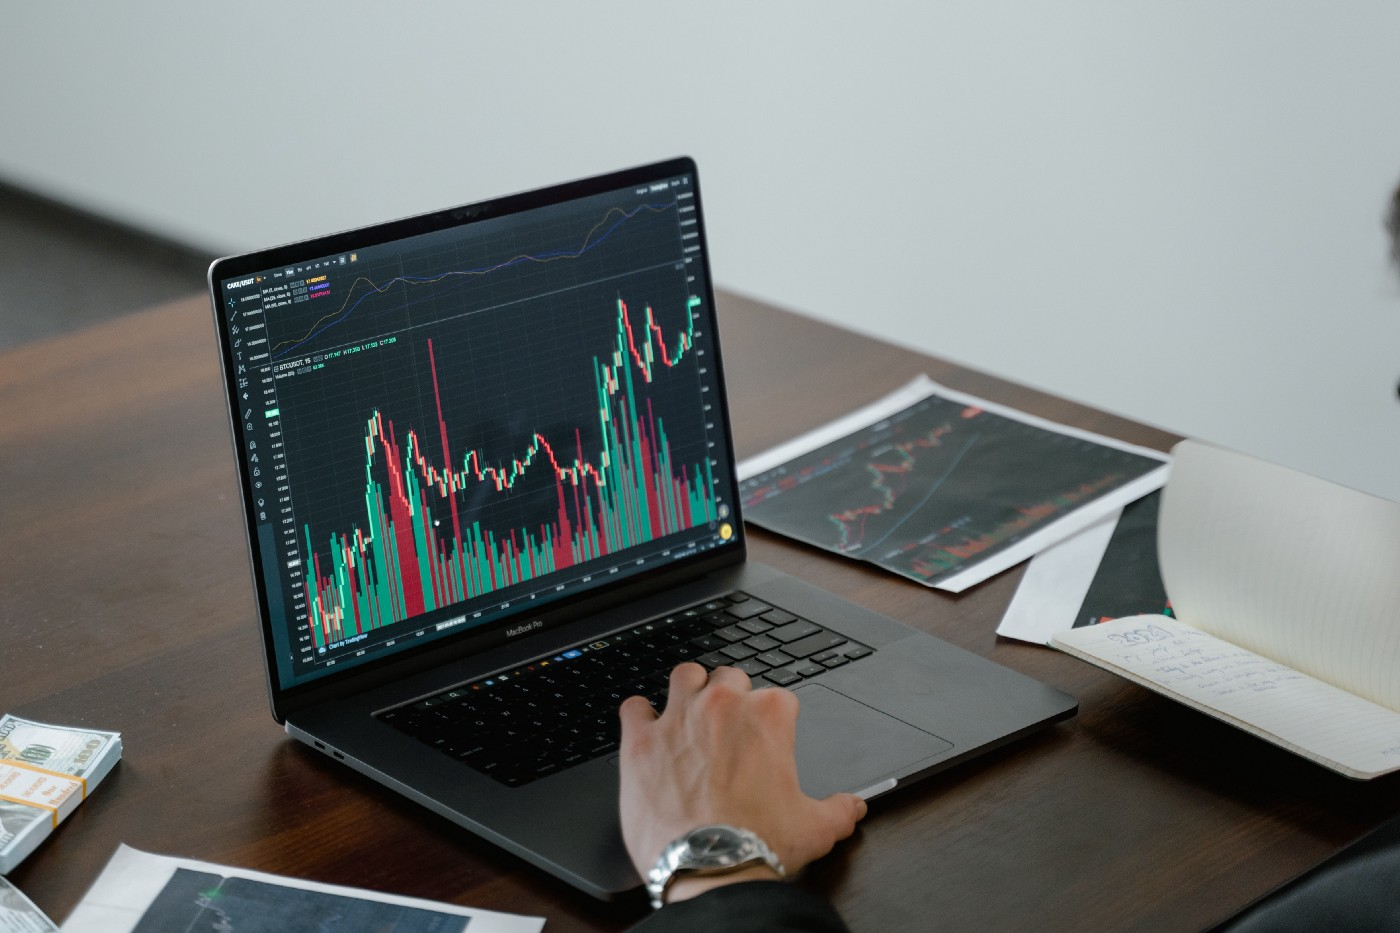 Person checking stock price on computer.